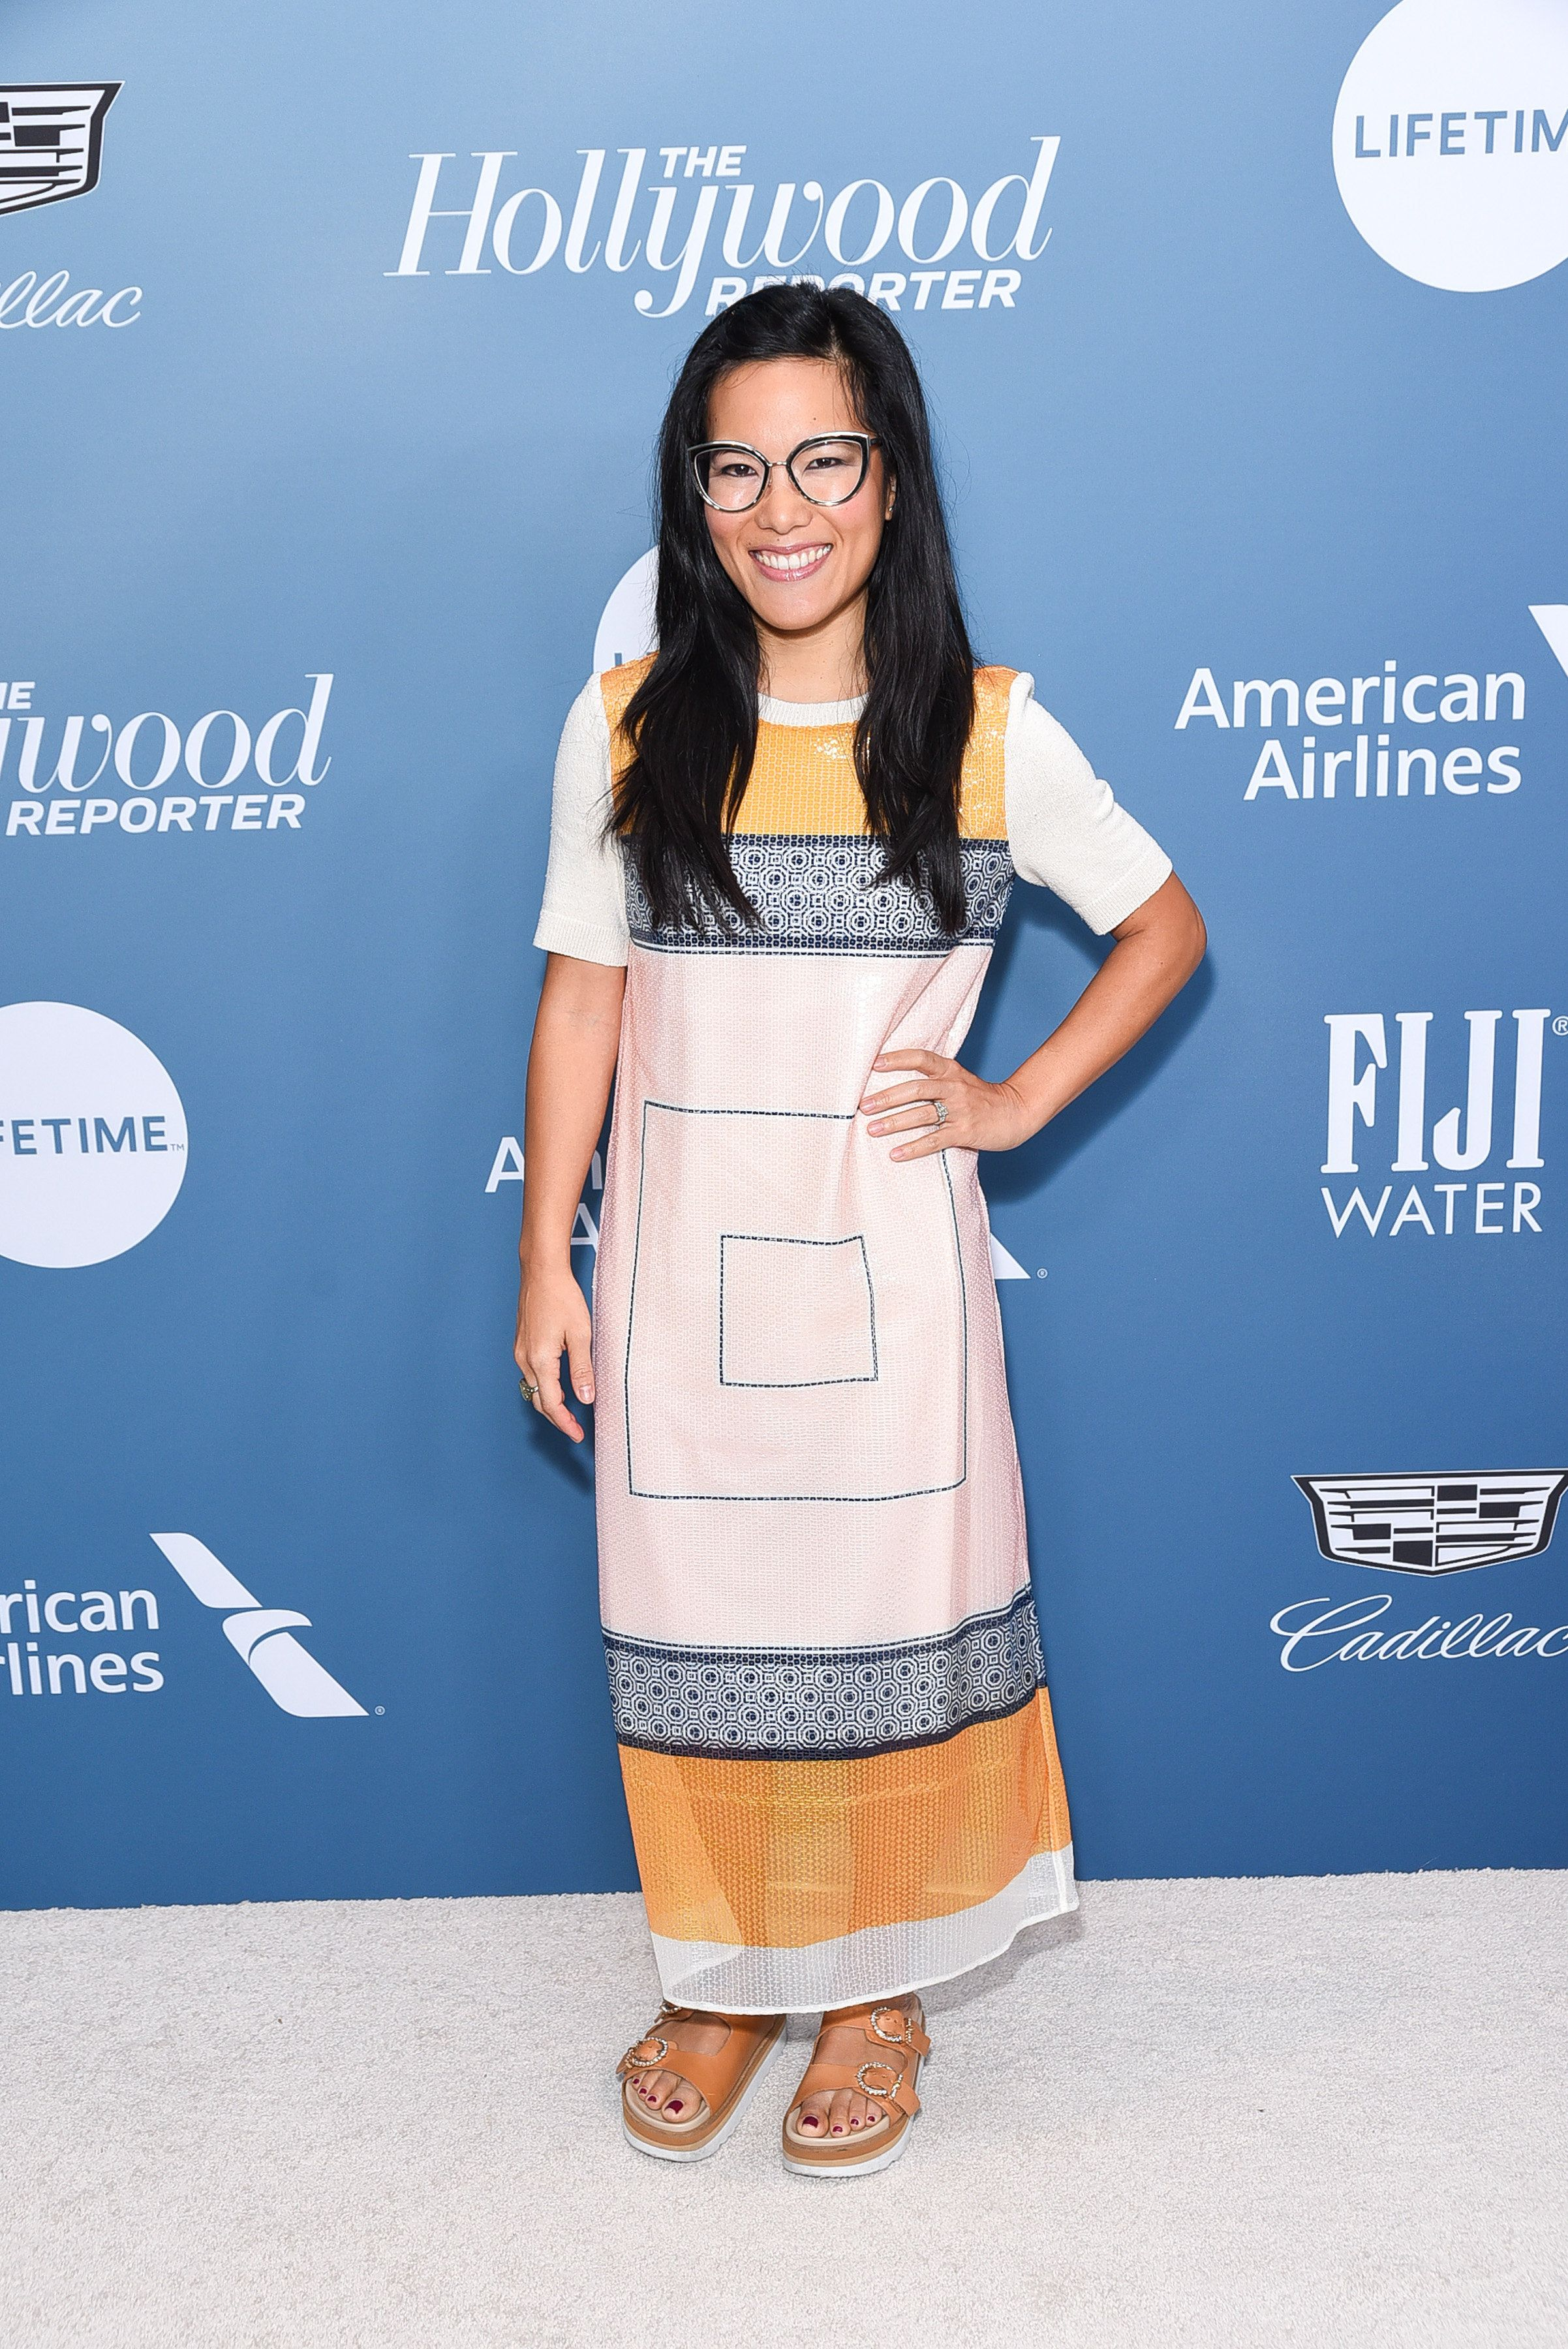 LOS ANGELES, CALIFORNIA - DECEMBER 05: Ali Wong attends The Hollywood Reporter's Power 100 Women In Entertainment at Milk Studios on December 05, 2018 in Los Angeles, California. (Photo by Presley Ann/Getty Images)